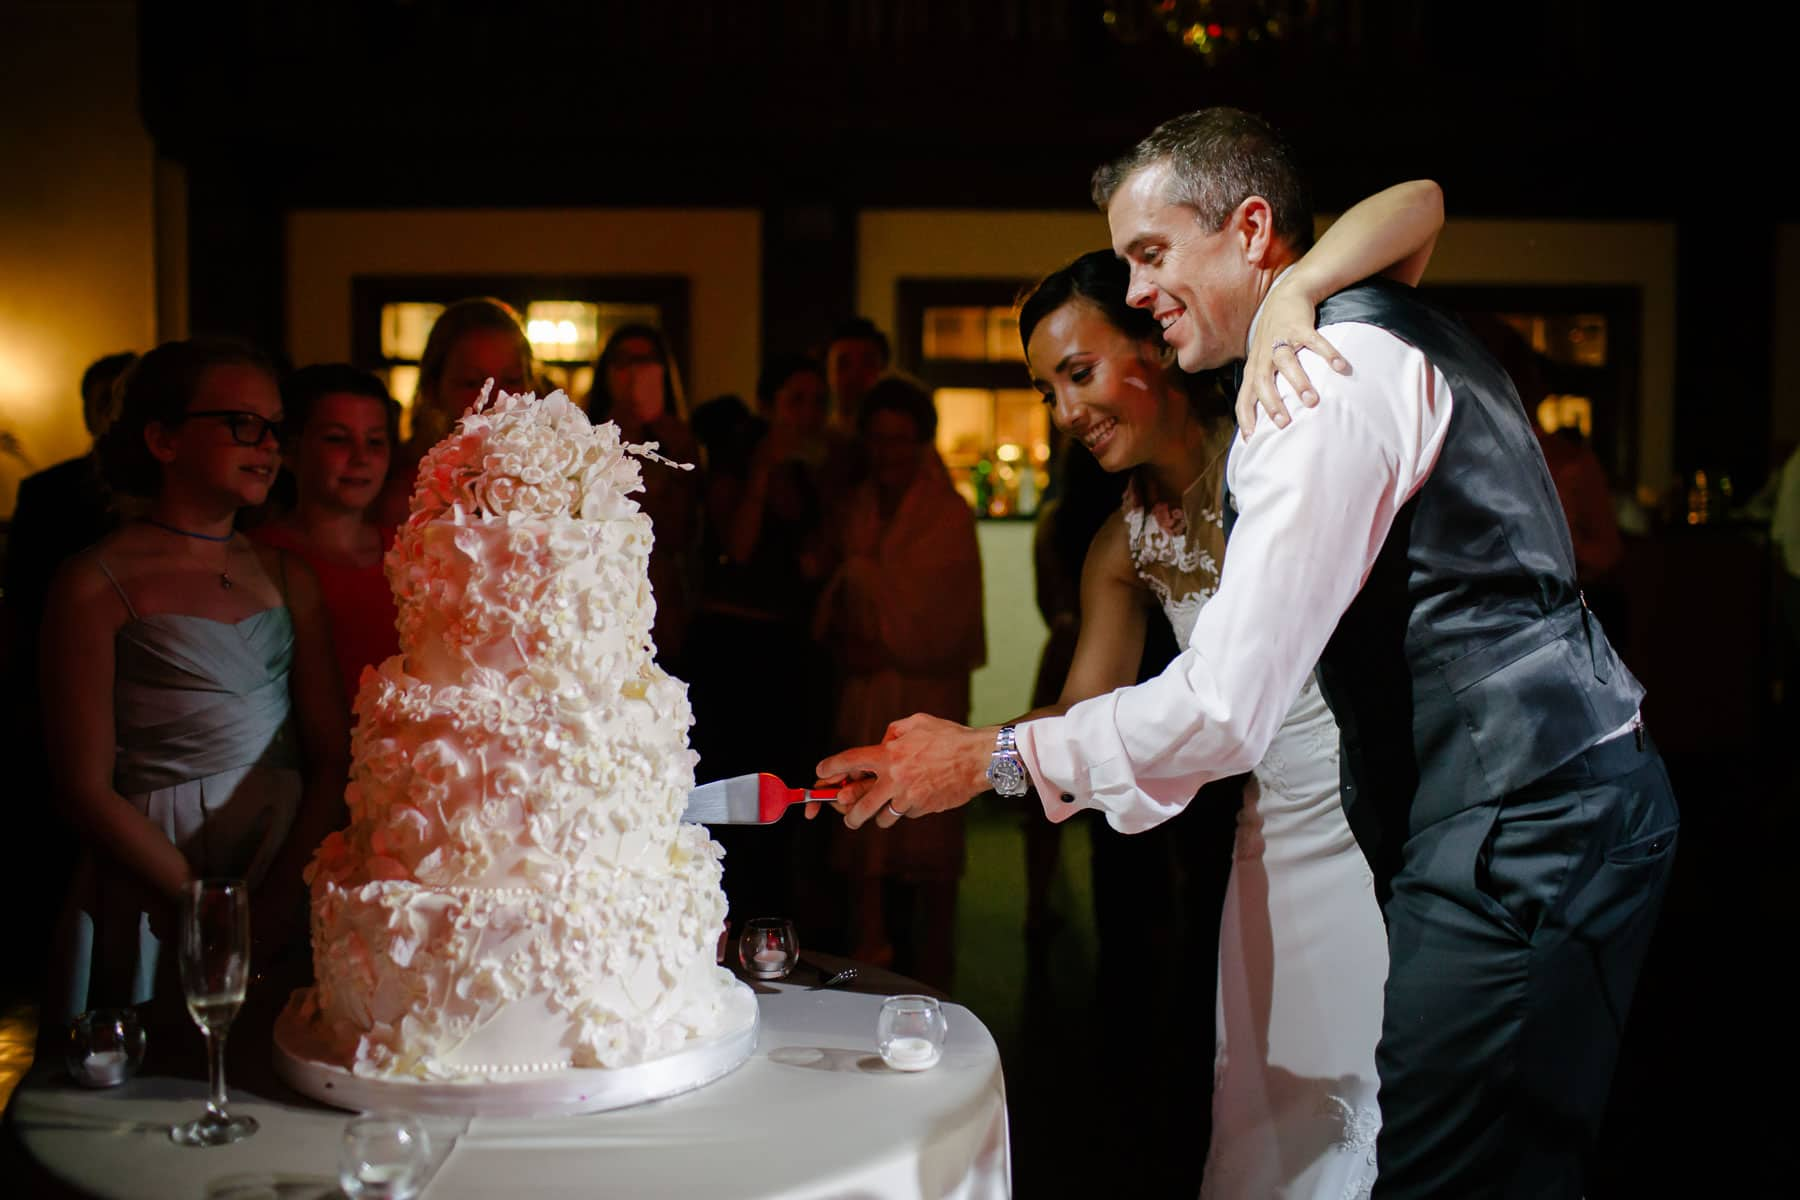 The bride and groom cut the three tiered wedding cake surrounded by guests at this Boulevard Club wedding.